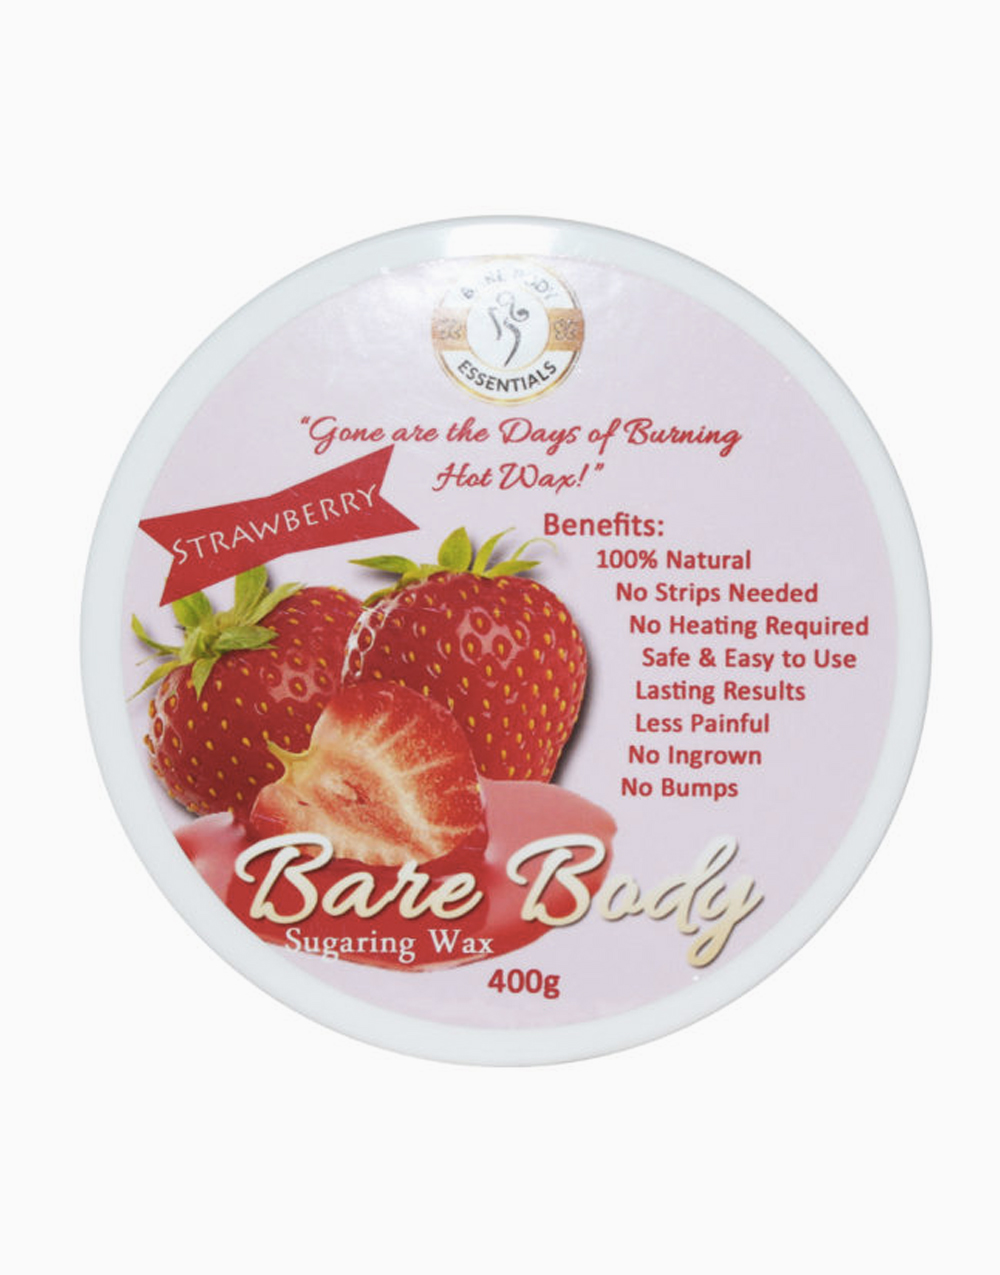 Bare Body Sugaring Wax (400g) by Bare Body Essentials | Strawberry